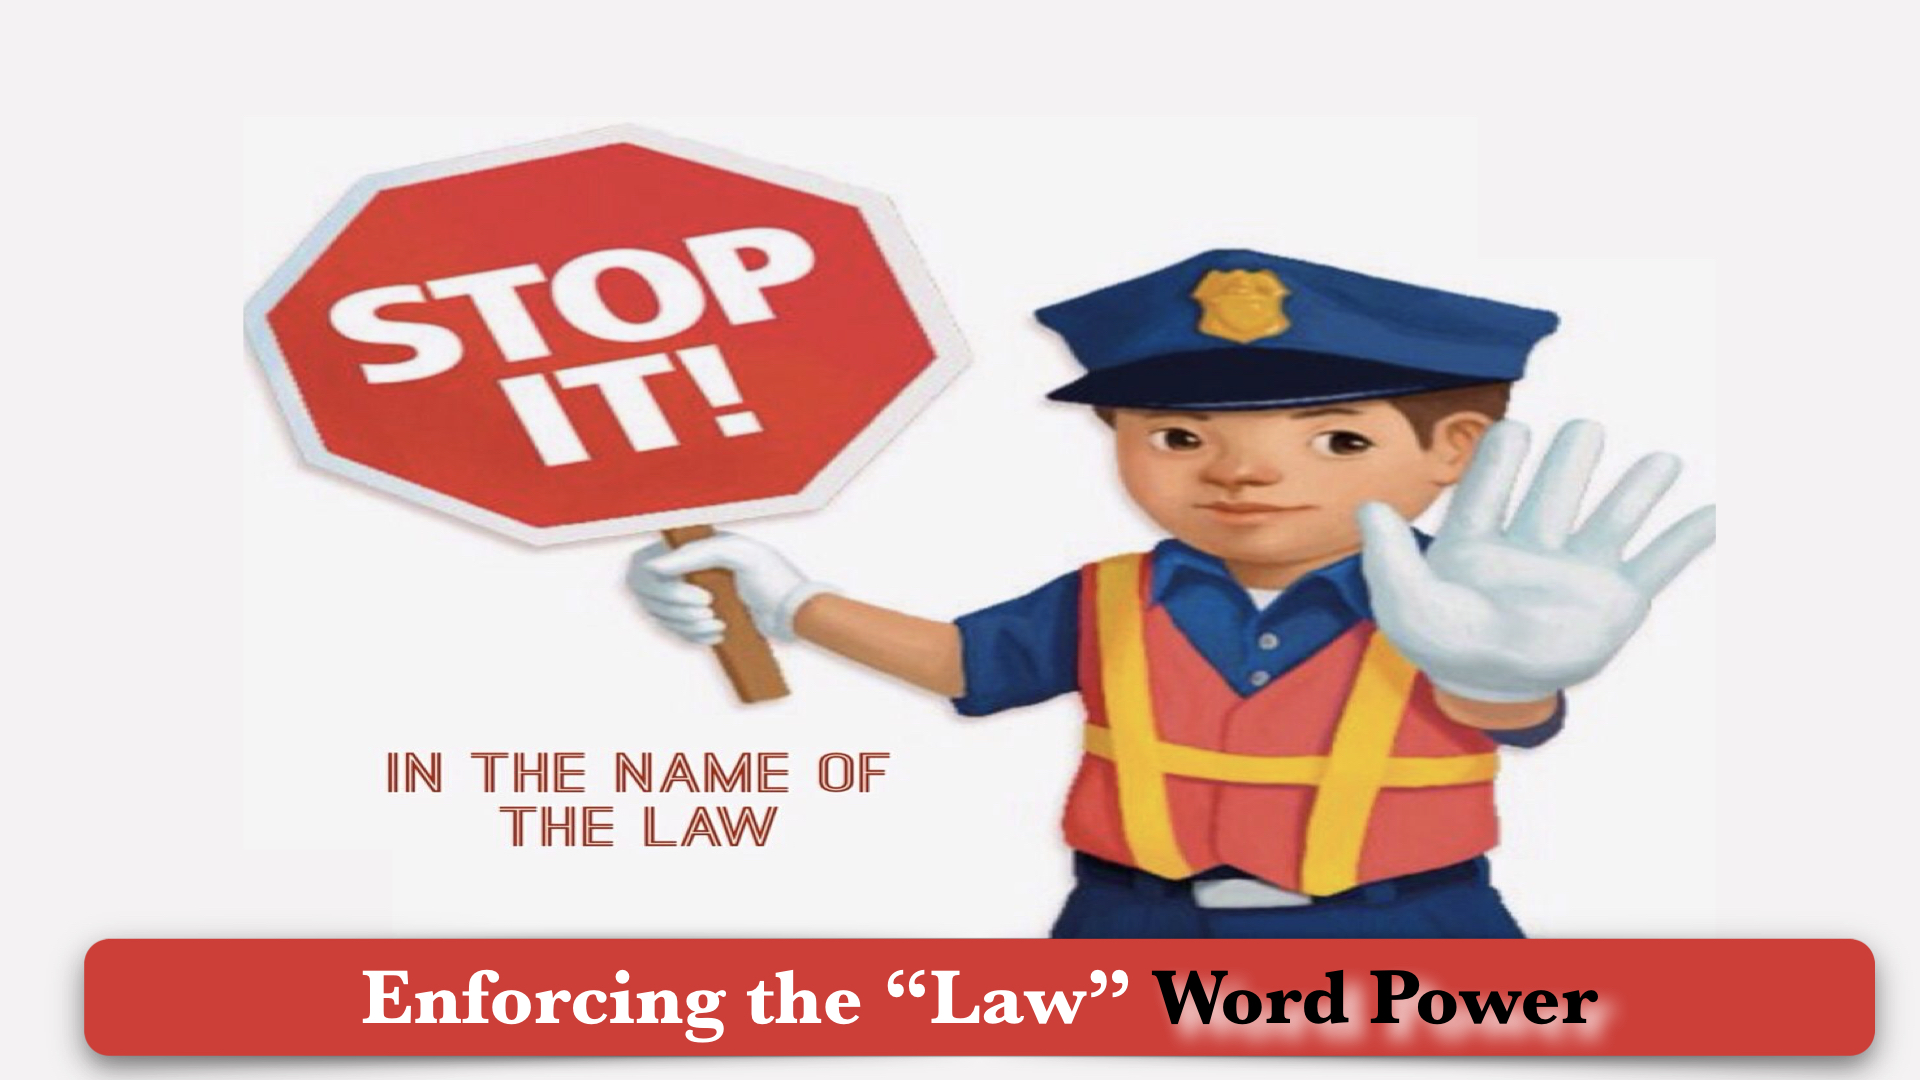 Word Power 10142018 82804 AM